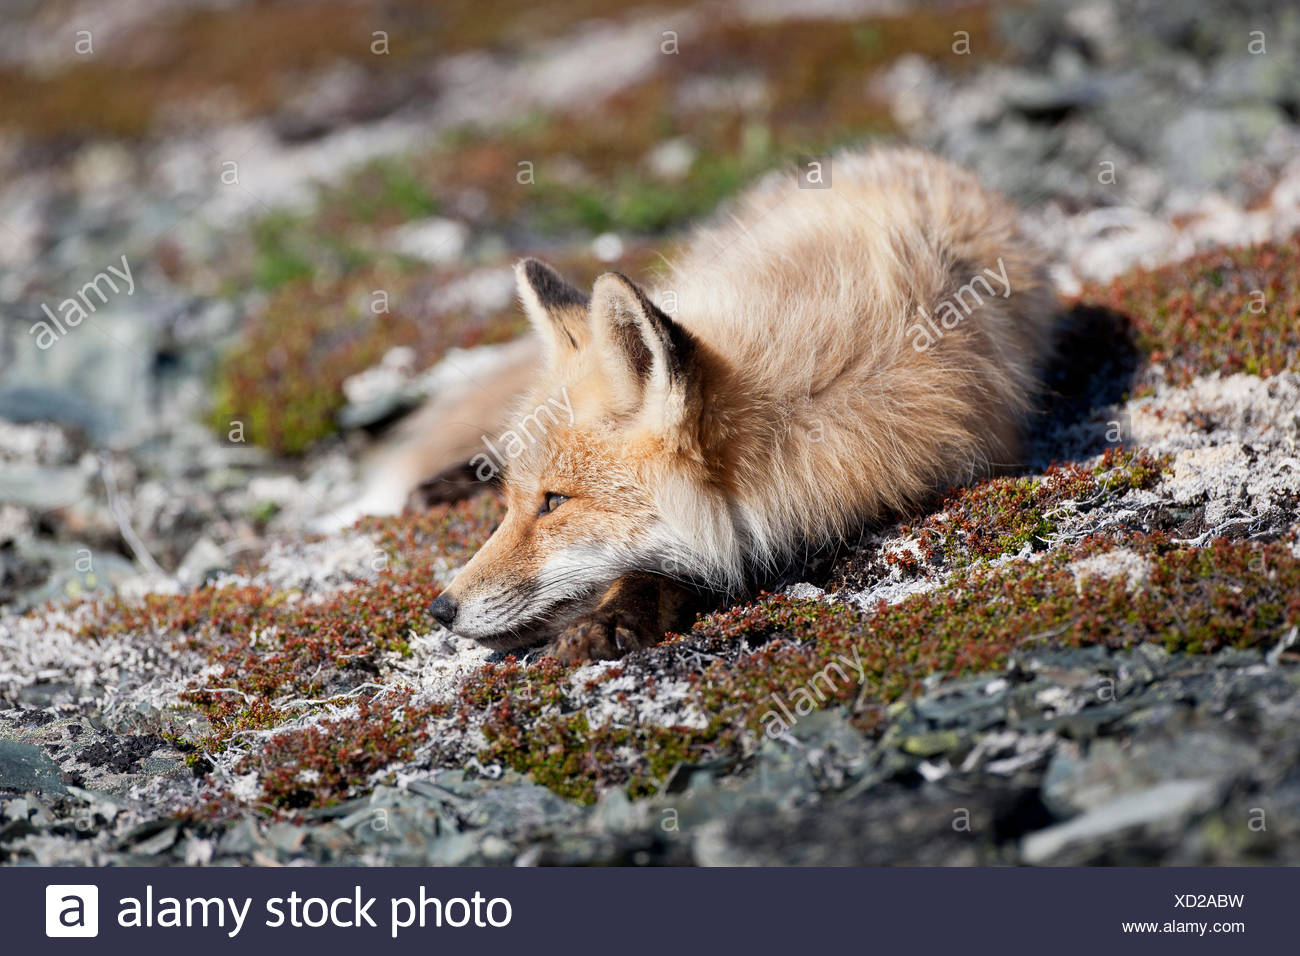 canada goose red fox